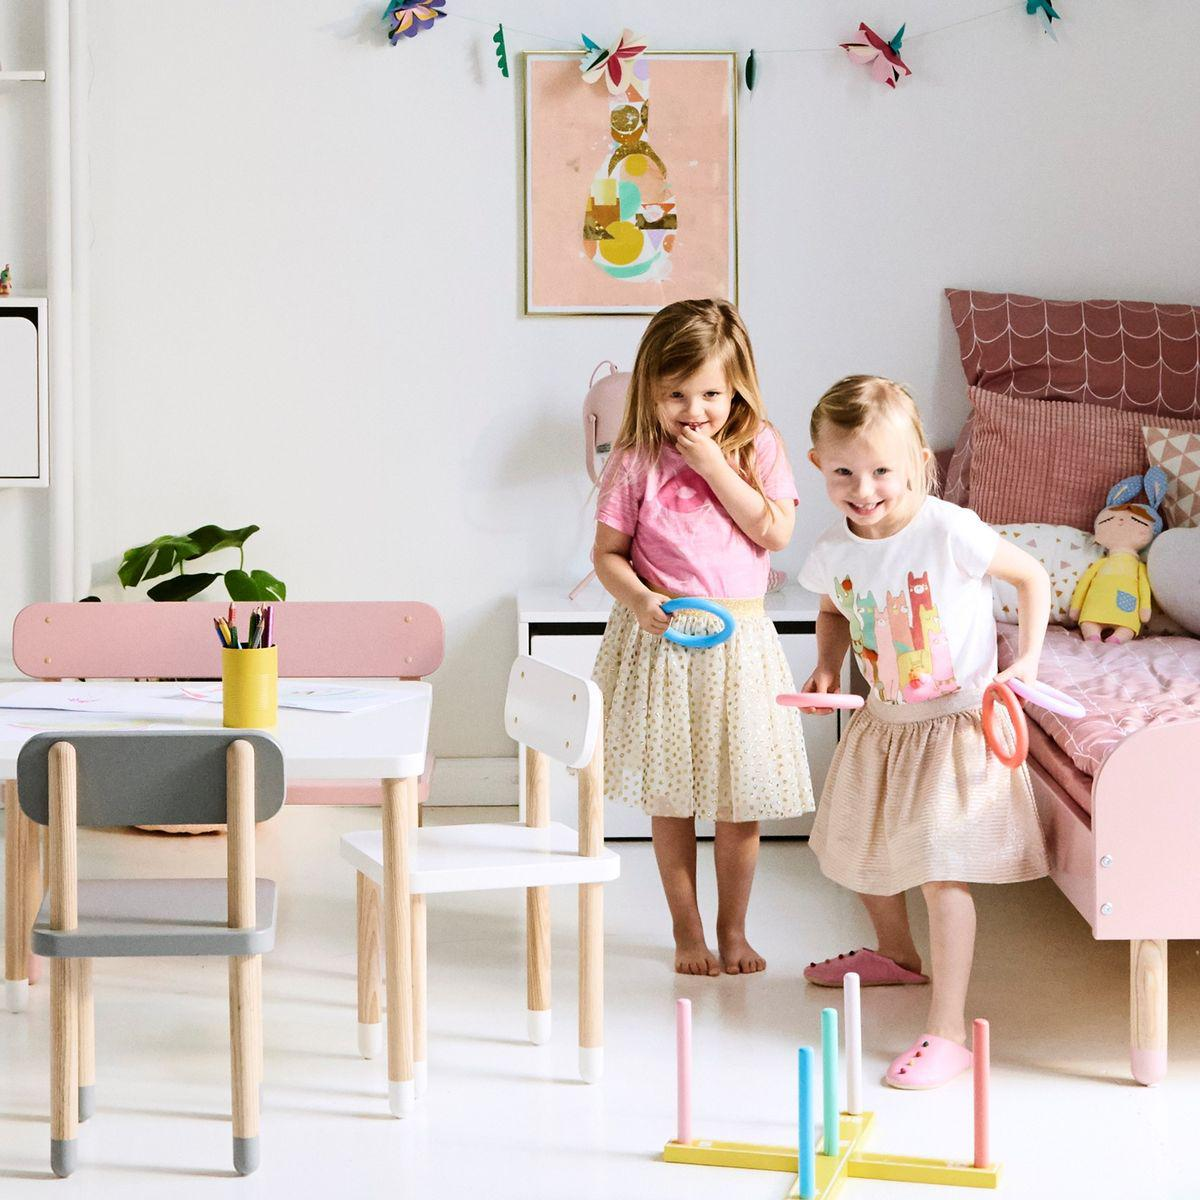 Baúl infantil PLAY Flexa blanco